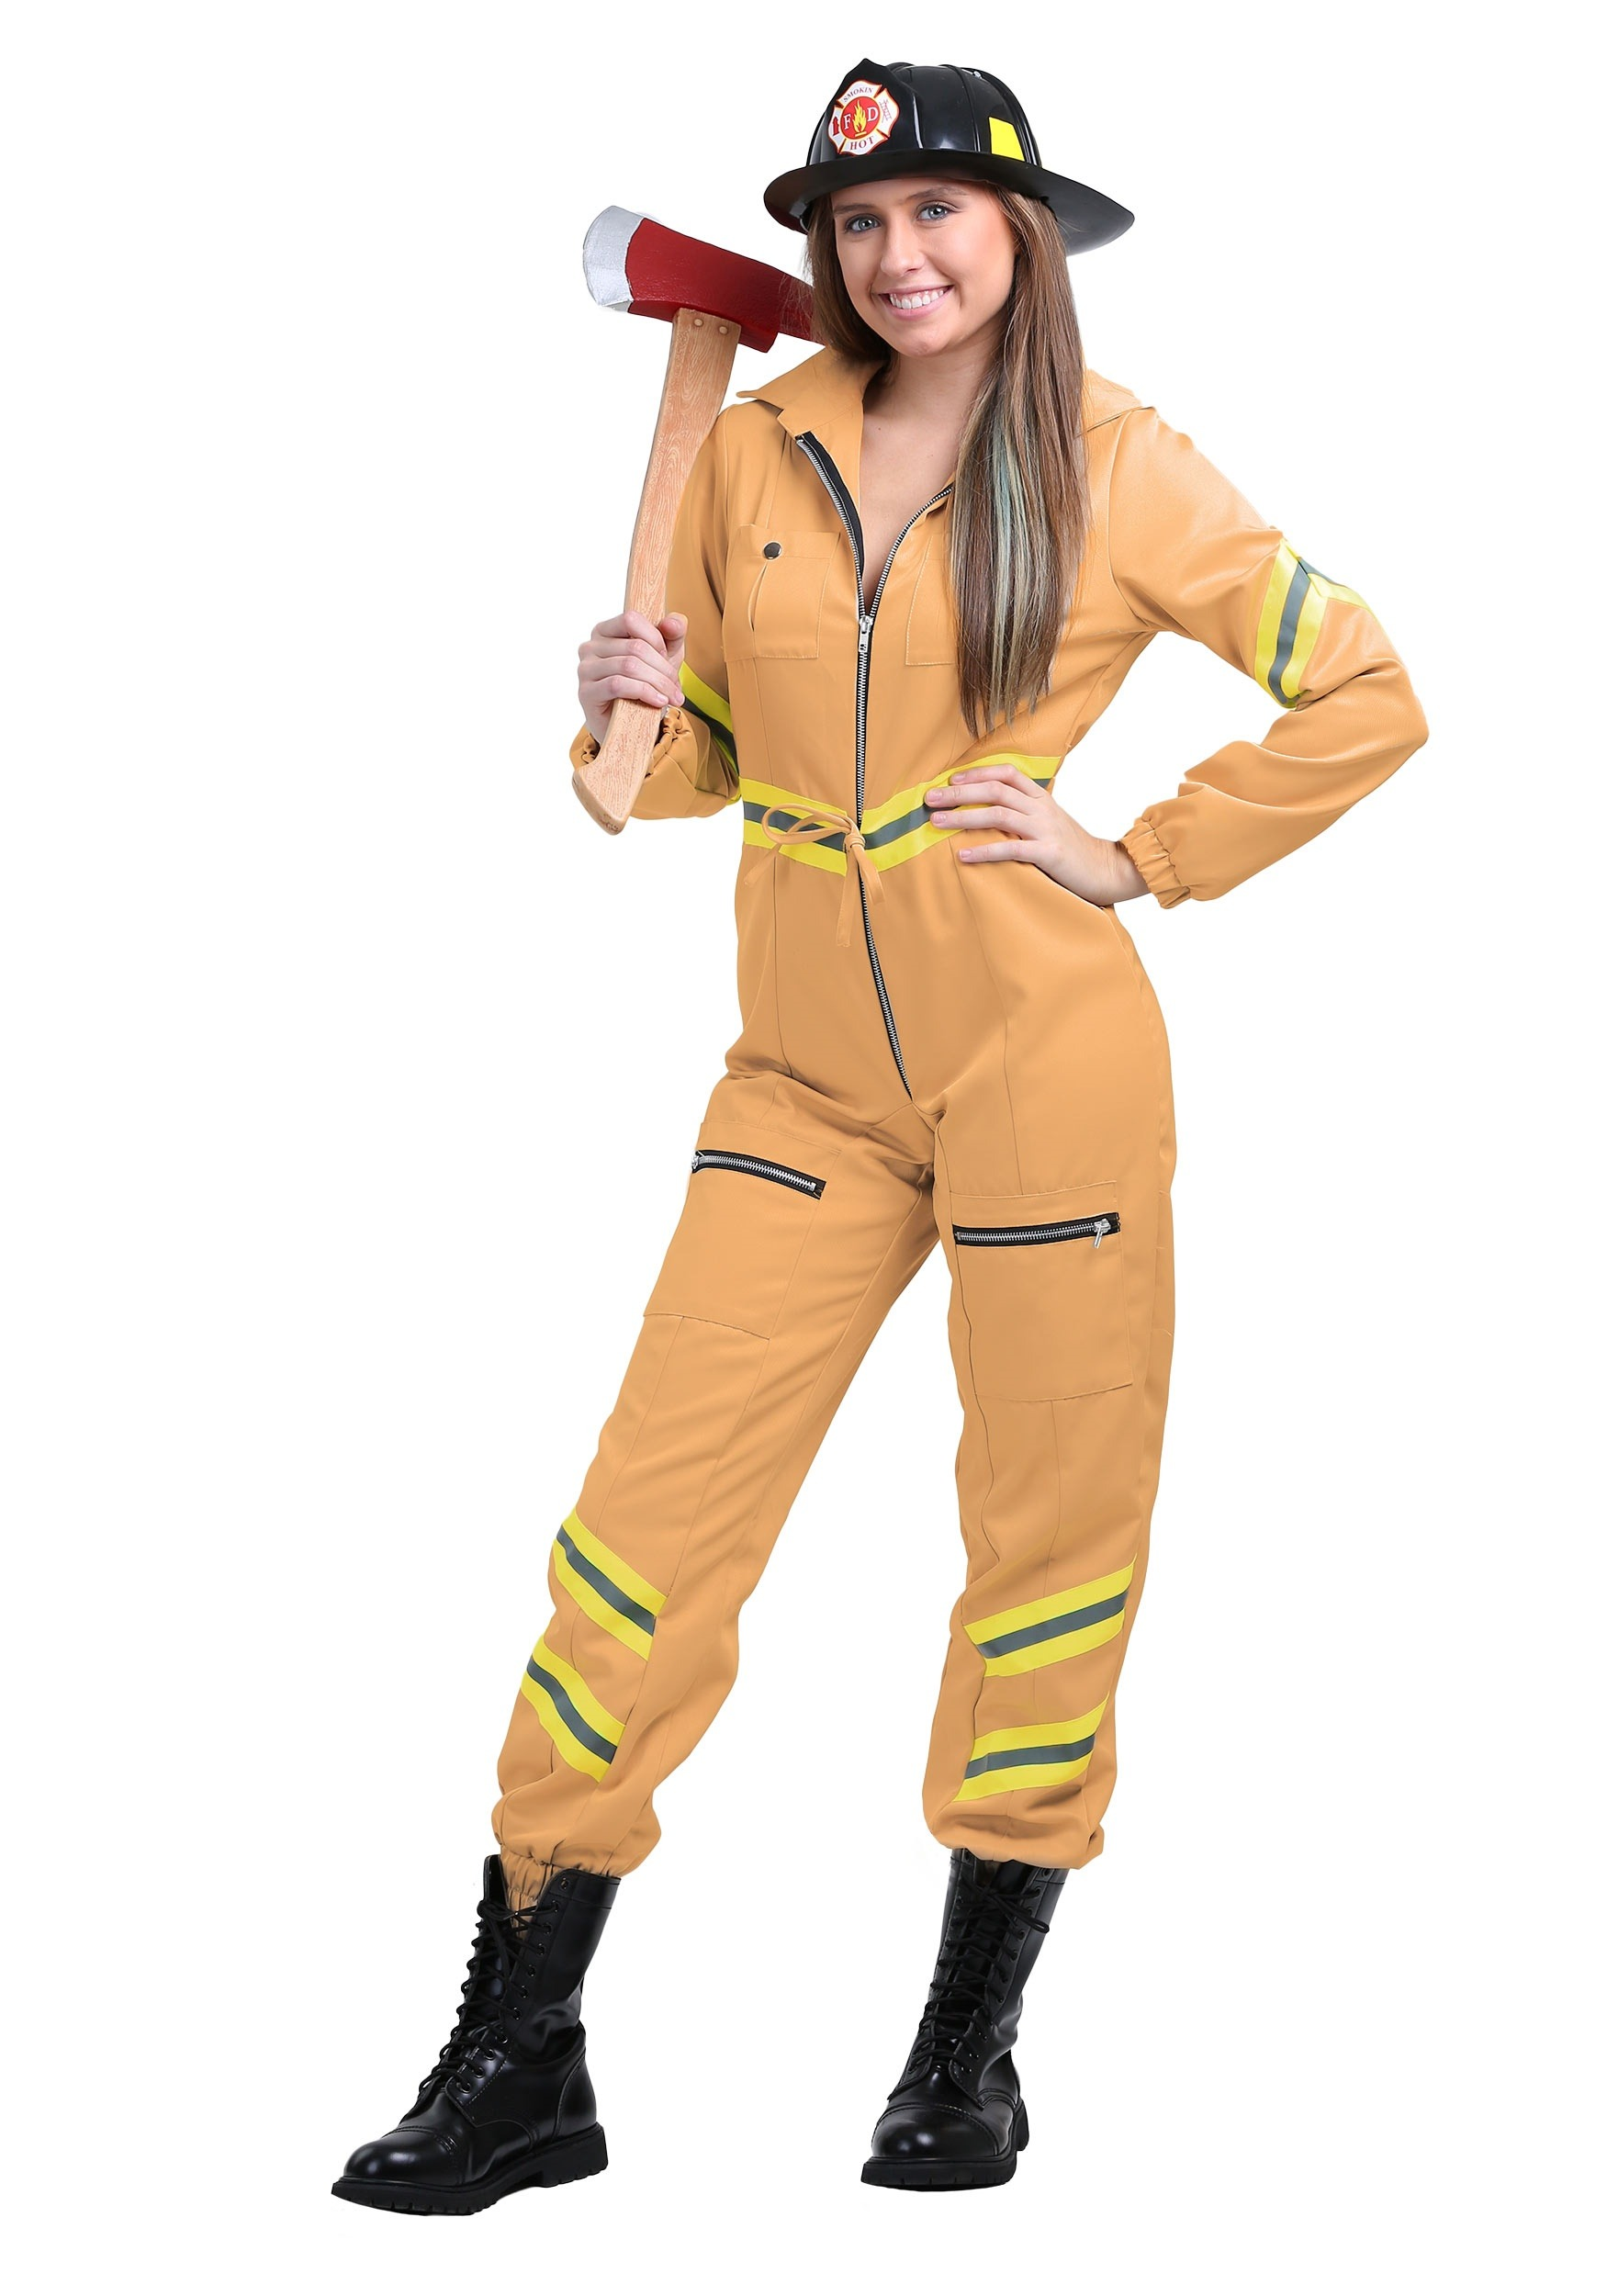 womens tan firefighter jumpsuit - Fireman Halloween